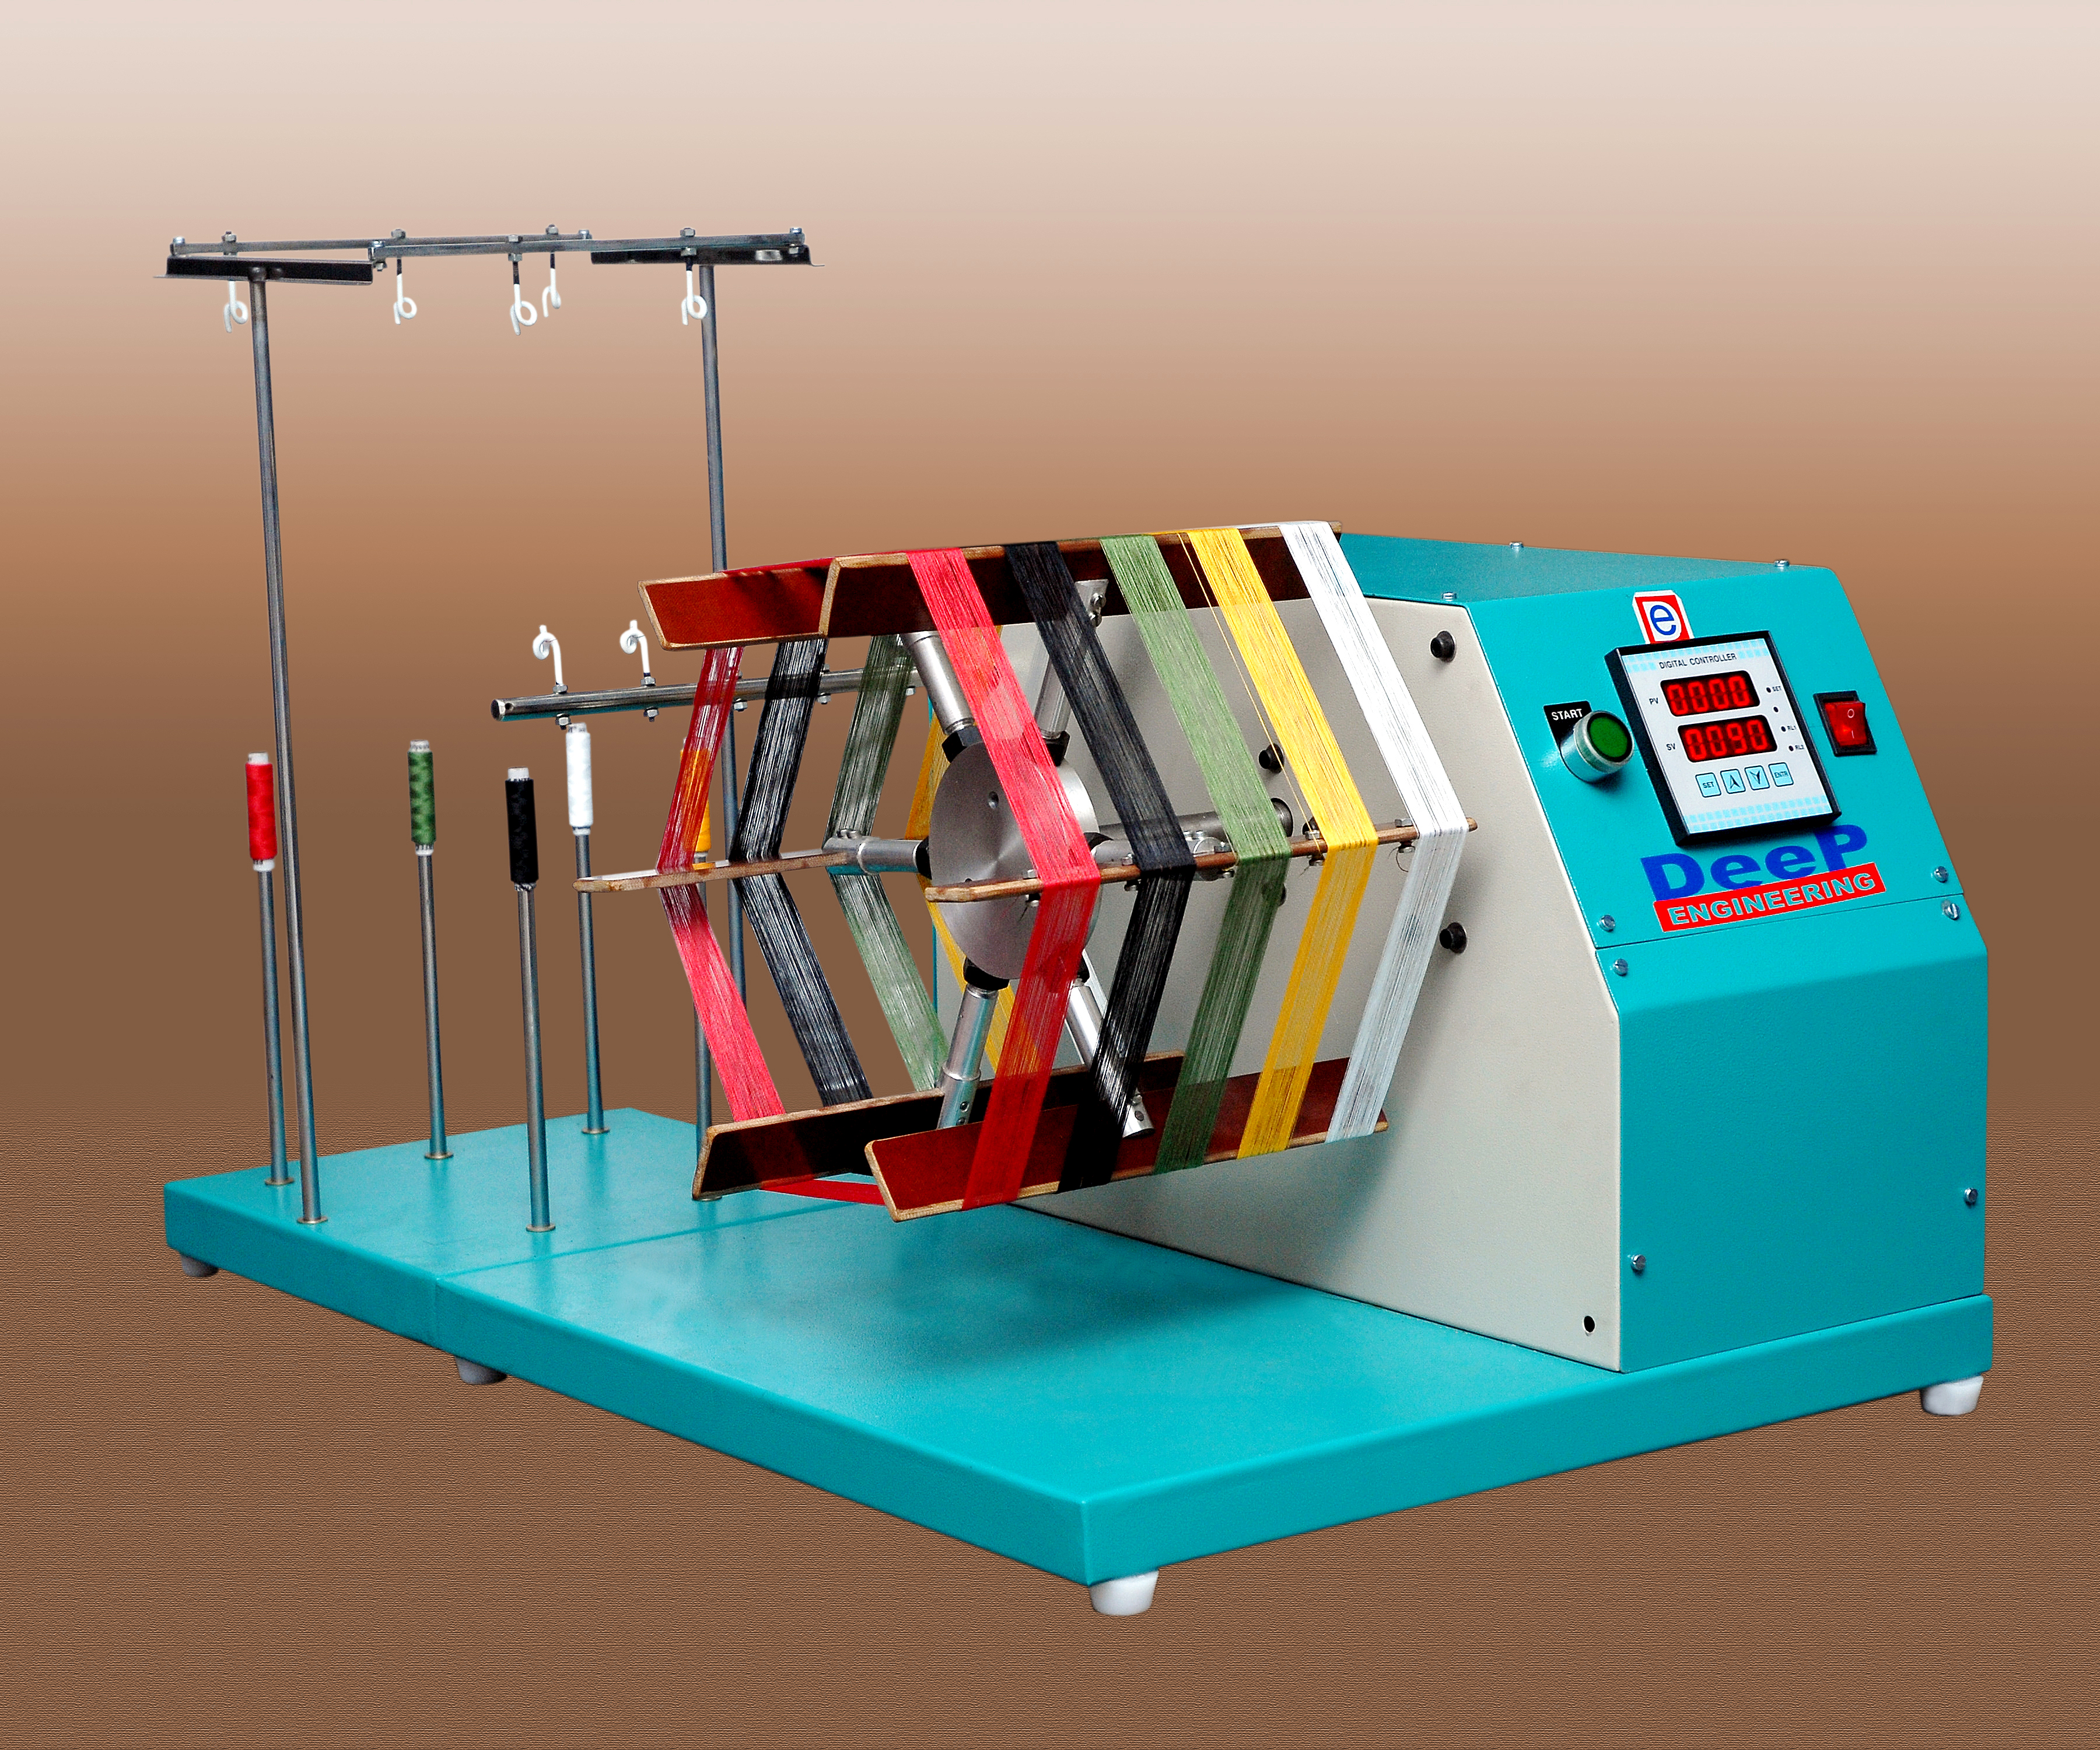 Wrap Reel-Cotton Fabric Dyeing Machine for Laboratory Manufacturer & Supplier in Gujarat